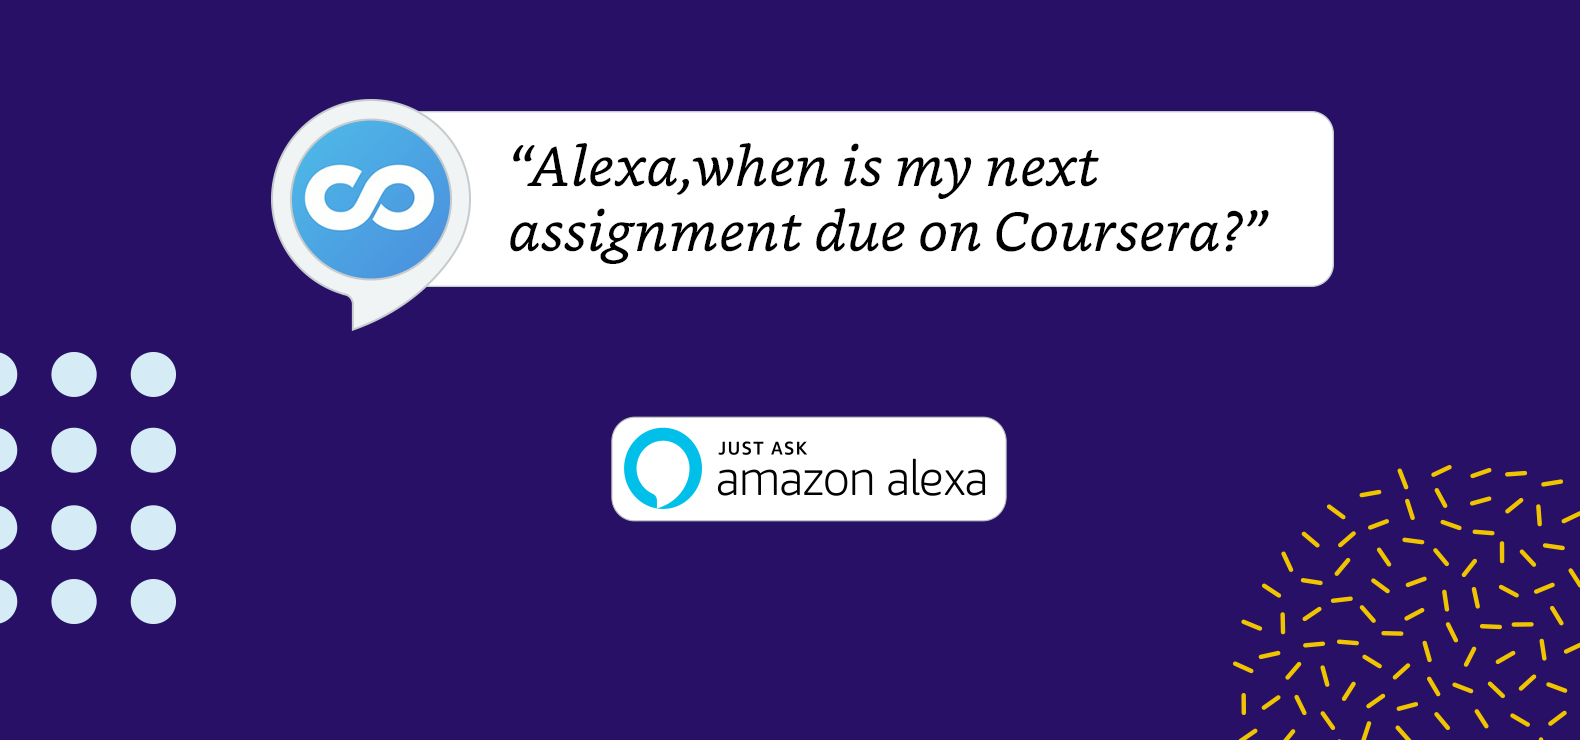 Coursera Introduces Amazon Alexa Skill to Support Learning Goals